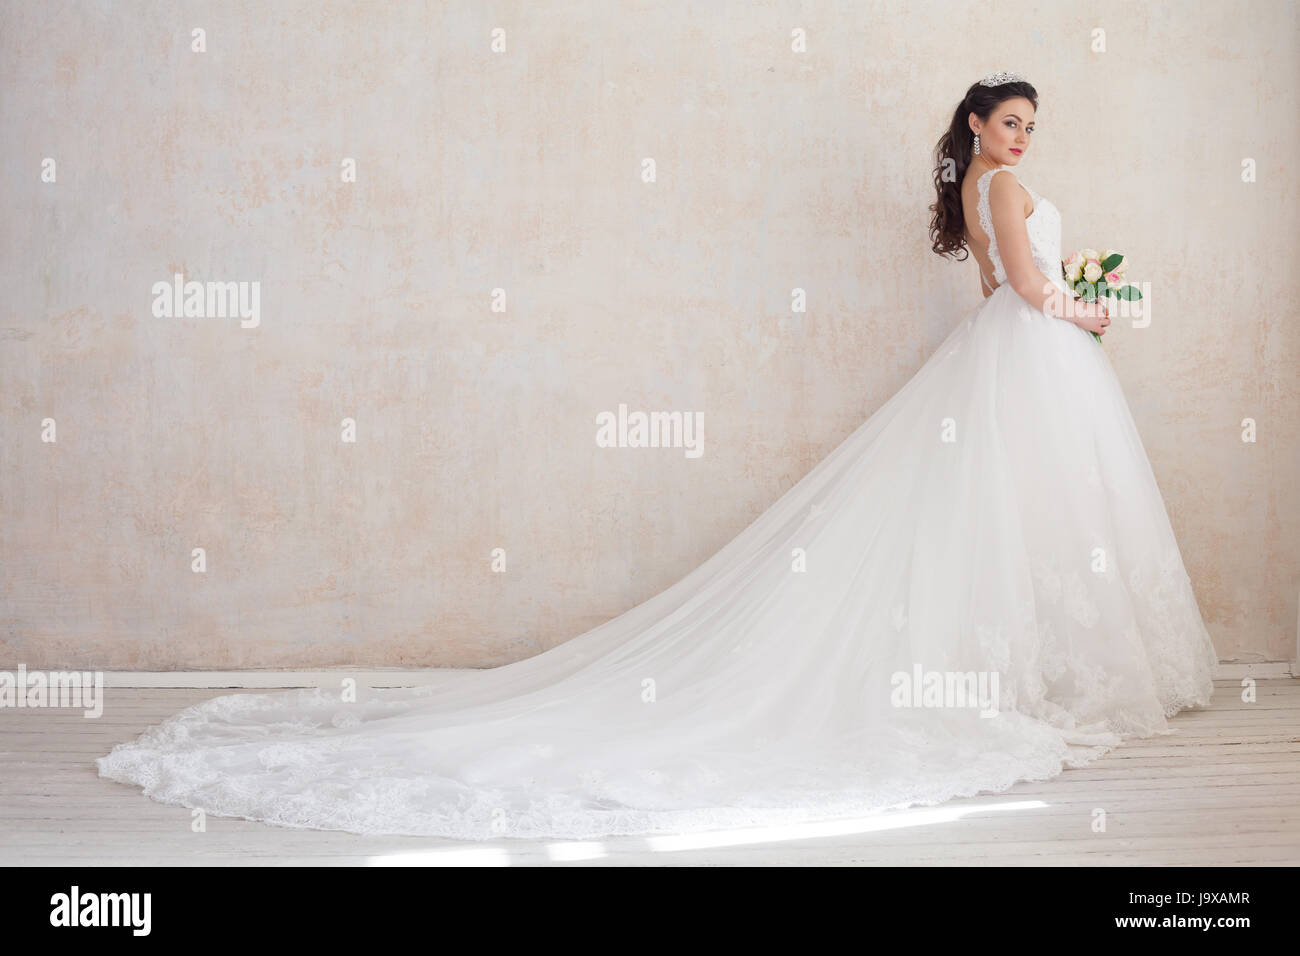 Princess Bride Stockfotos & Princess Bride Bilder - Alamy